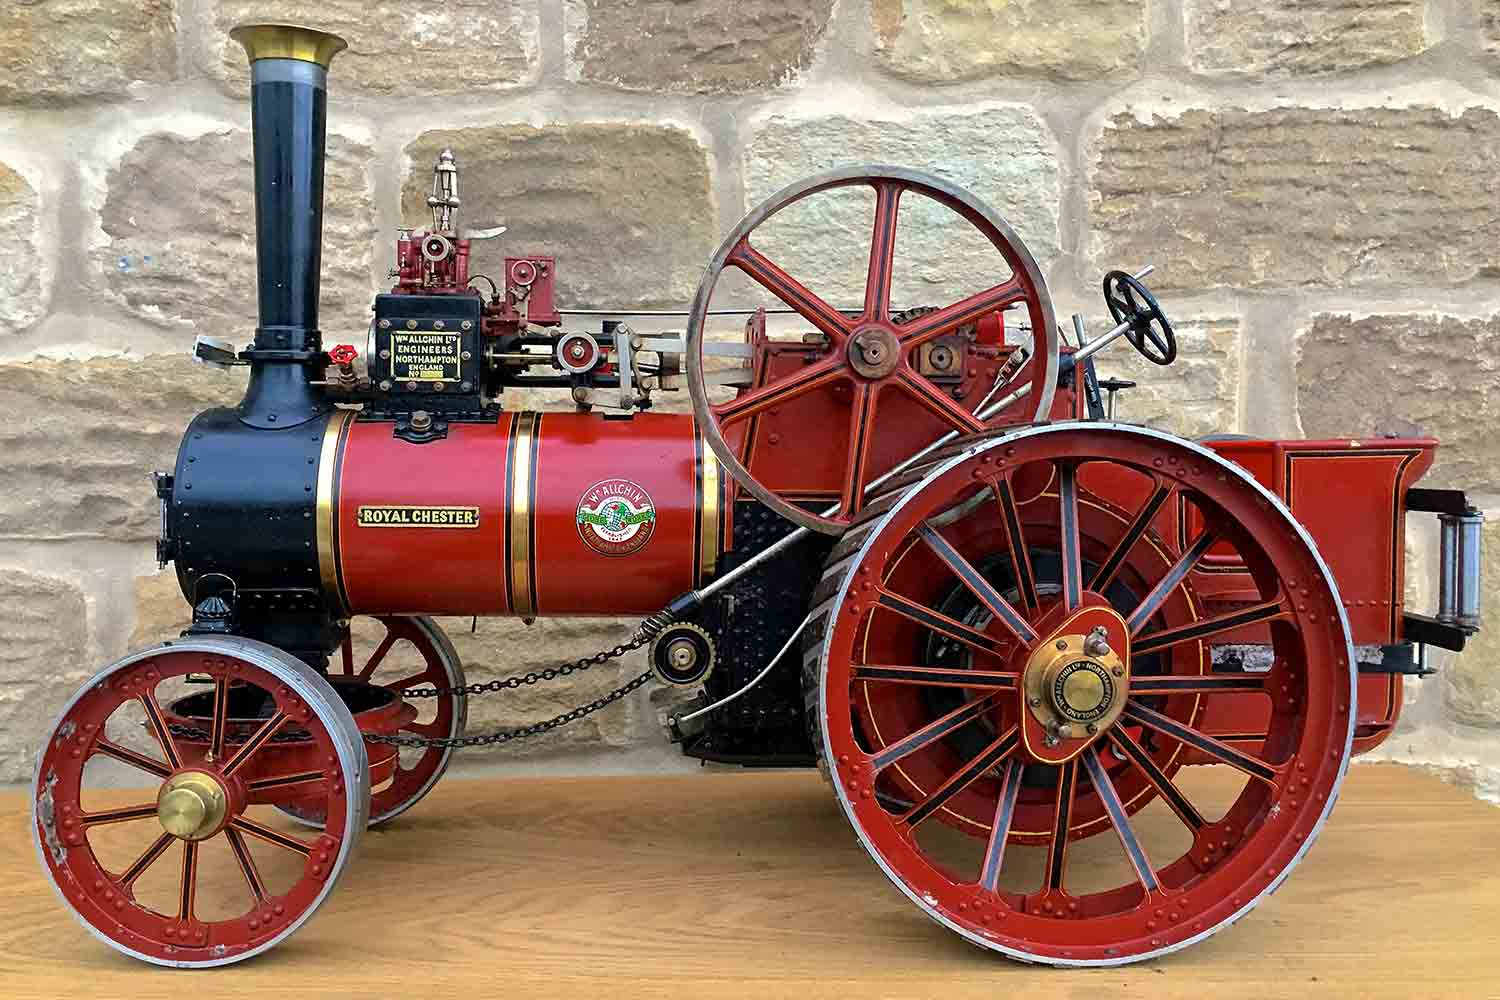 test Alchin-Traction-Engine-Royal-Chester-live-steam-model-for-sale-03